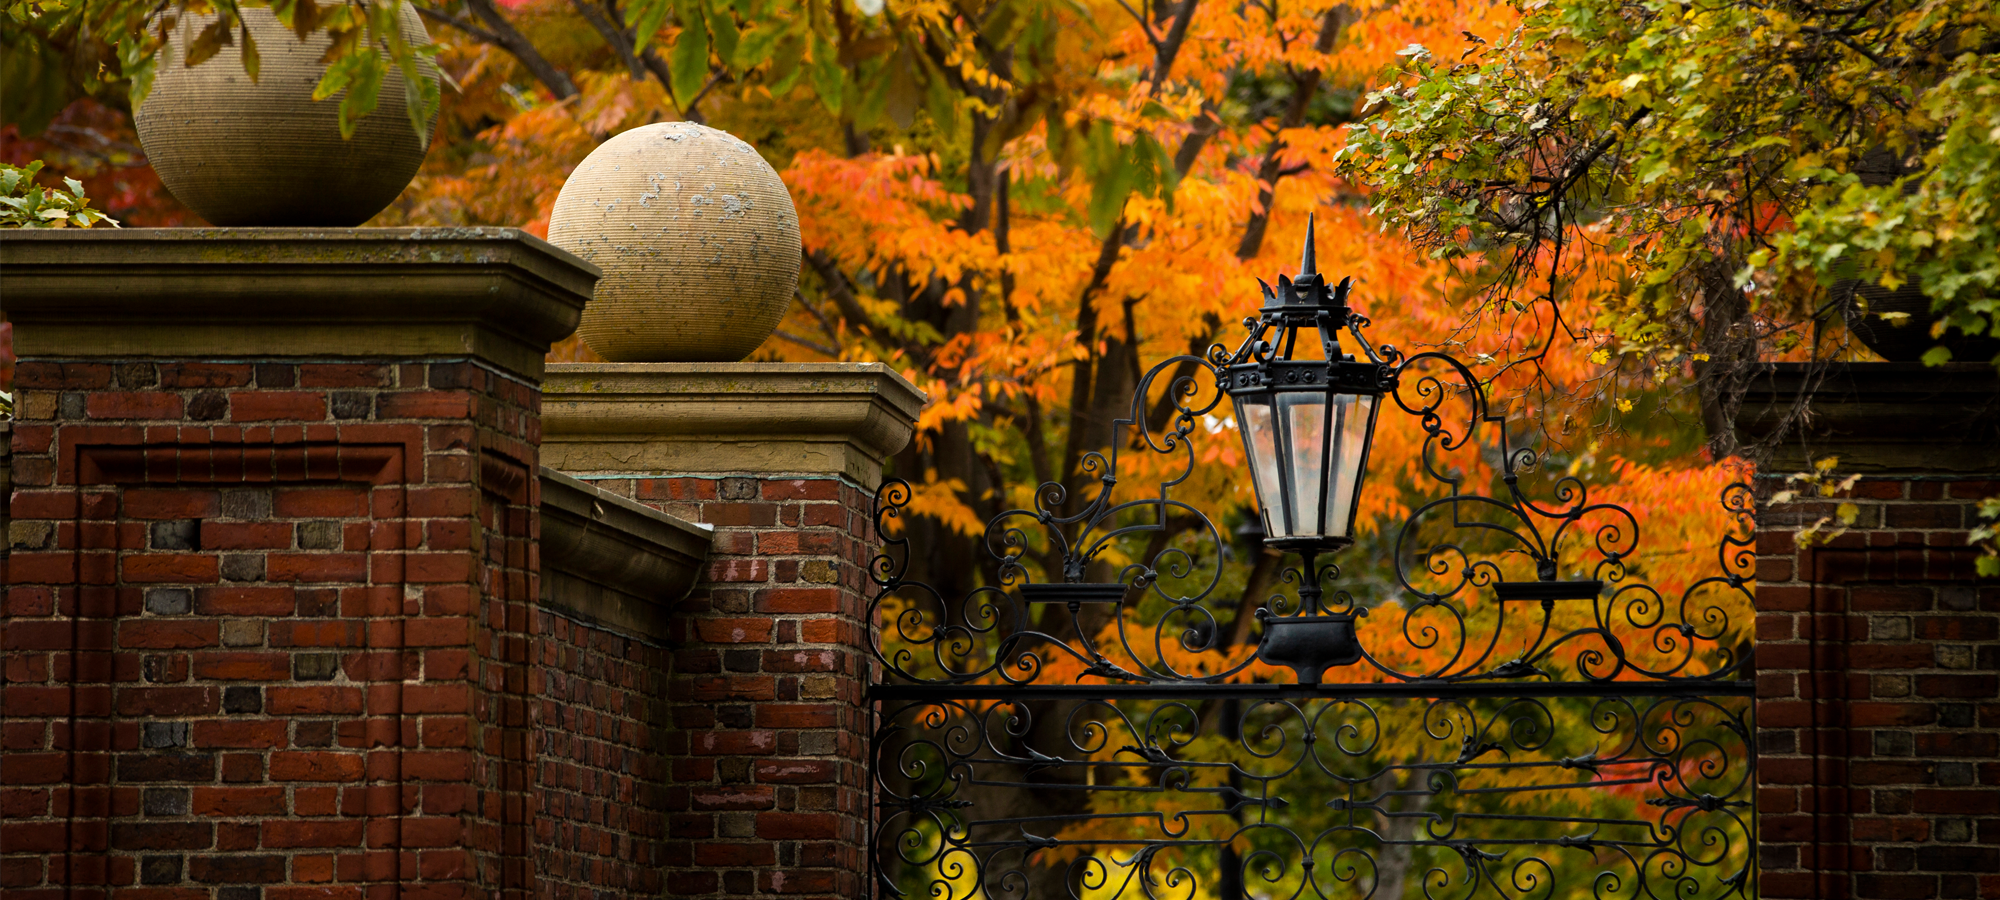 Harvard gates in the fall